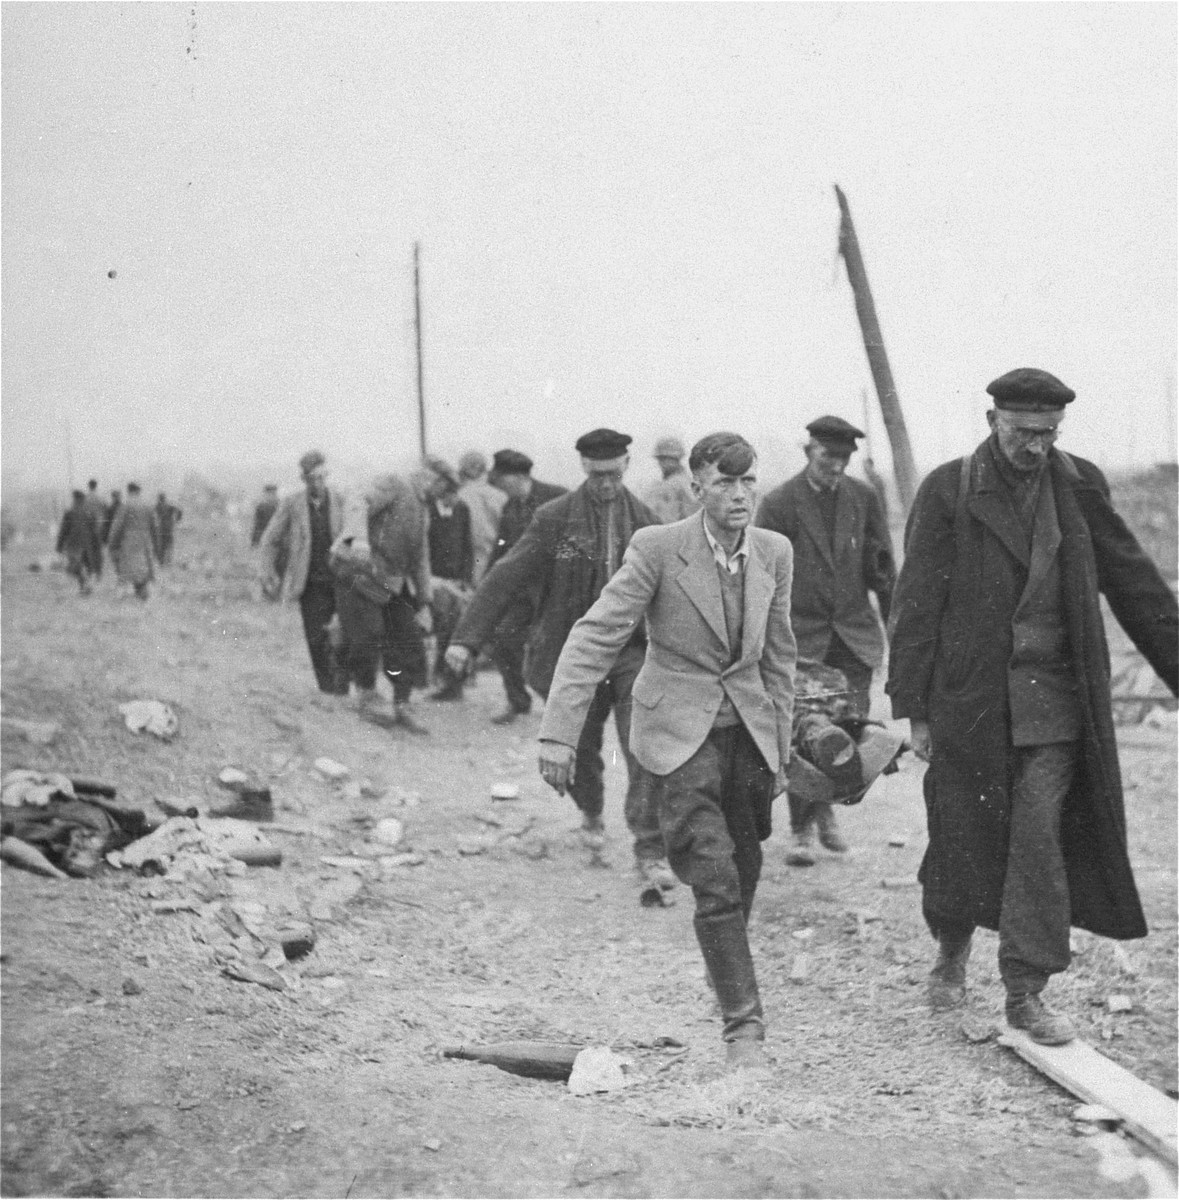 German civilians carry corpses of dead prisoners from the Nordhausen concentration camp to a mass grave for burial.